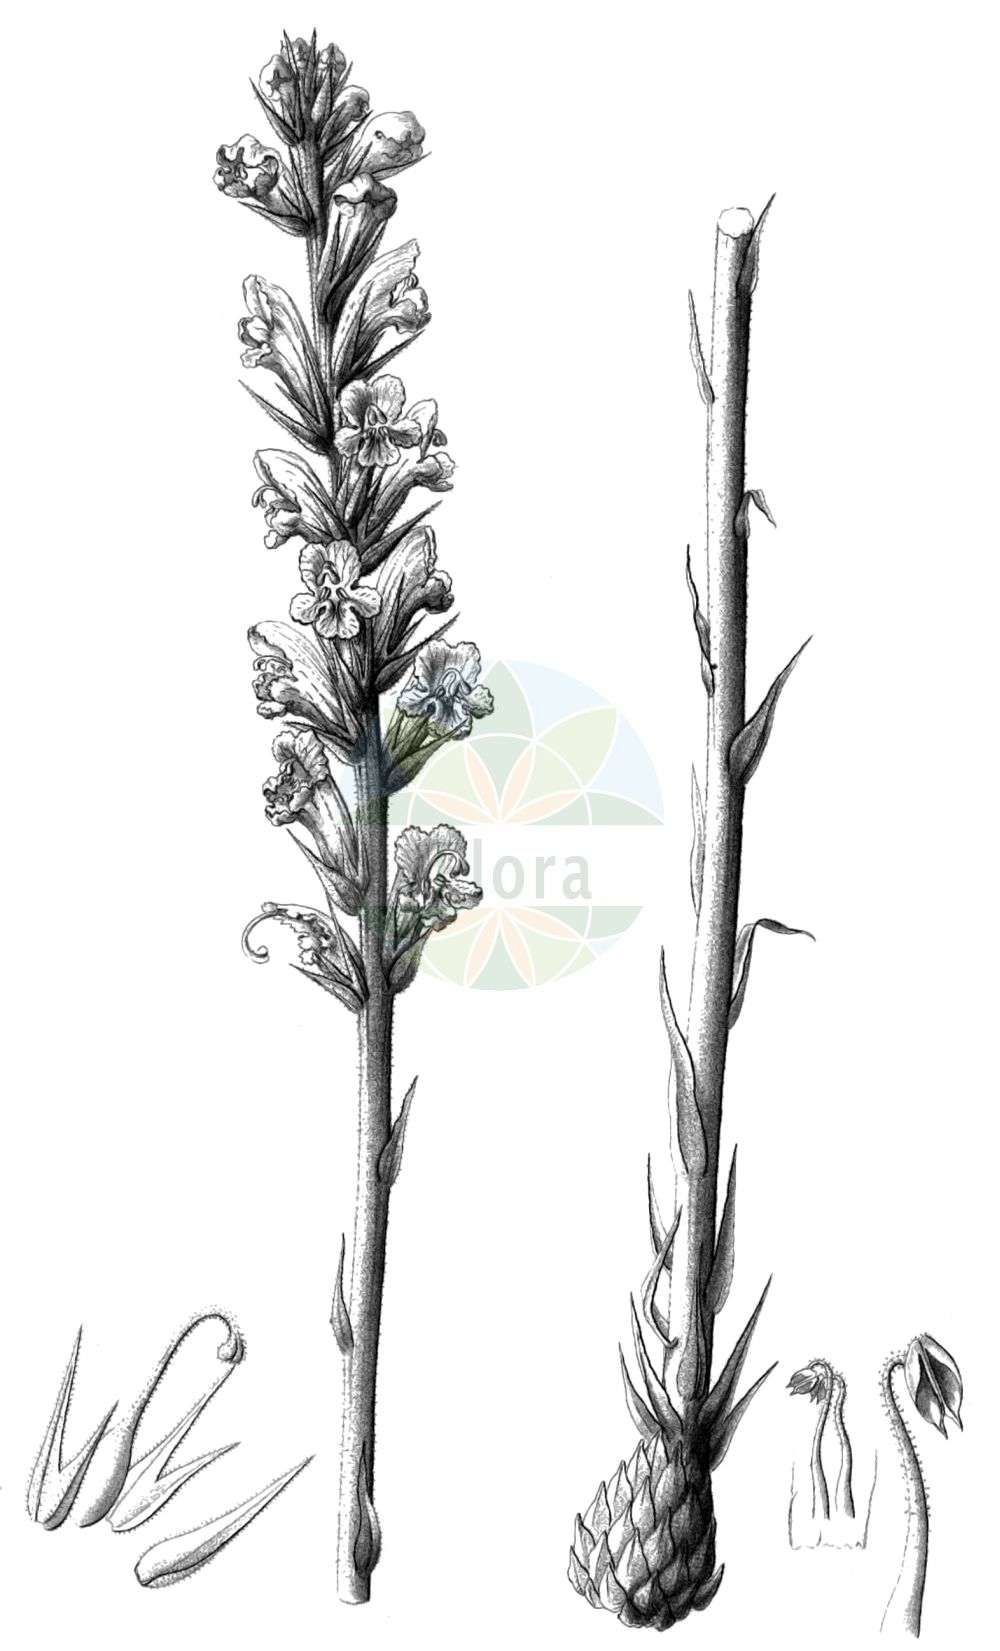 Historische Abbildung von Orobanche rapum-genistae (Ginster-Sommerwurz - Greater Broomrape). Das Bild zeigt Blatt, Bluete, Frucht und Same. ---- Historical Drawing of Orobanche rapum-genistae (Ginster-Sommerwurz - Greater Broomrape).The image is showing leaf, flower, fruit and seed.(Orobanche rapum-genistae,Ginster-Sommerwurz,Greater Broomrape,Orobanche benthamii,Orobanche bracteata,Orobanche insolita,Orobanche major,Orobanche rapum,Orobanche rapum-genistae,Orobanche rapum-genistae subsp. benthamii,Ginster-Sommerwurz,Greater Broomrape,Orobanche,Sommerwurz,Broomrape,Orobanchaceae,Sommerwurzgewaechse,Broomrape family,Blatt,Bluete,Frucht,Same,leaf,flower,fruit,seed,Reichenbach (1823-1832))